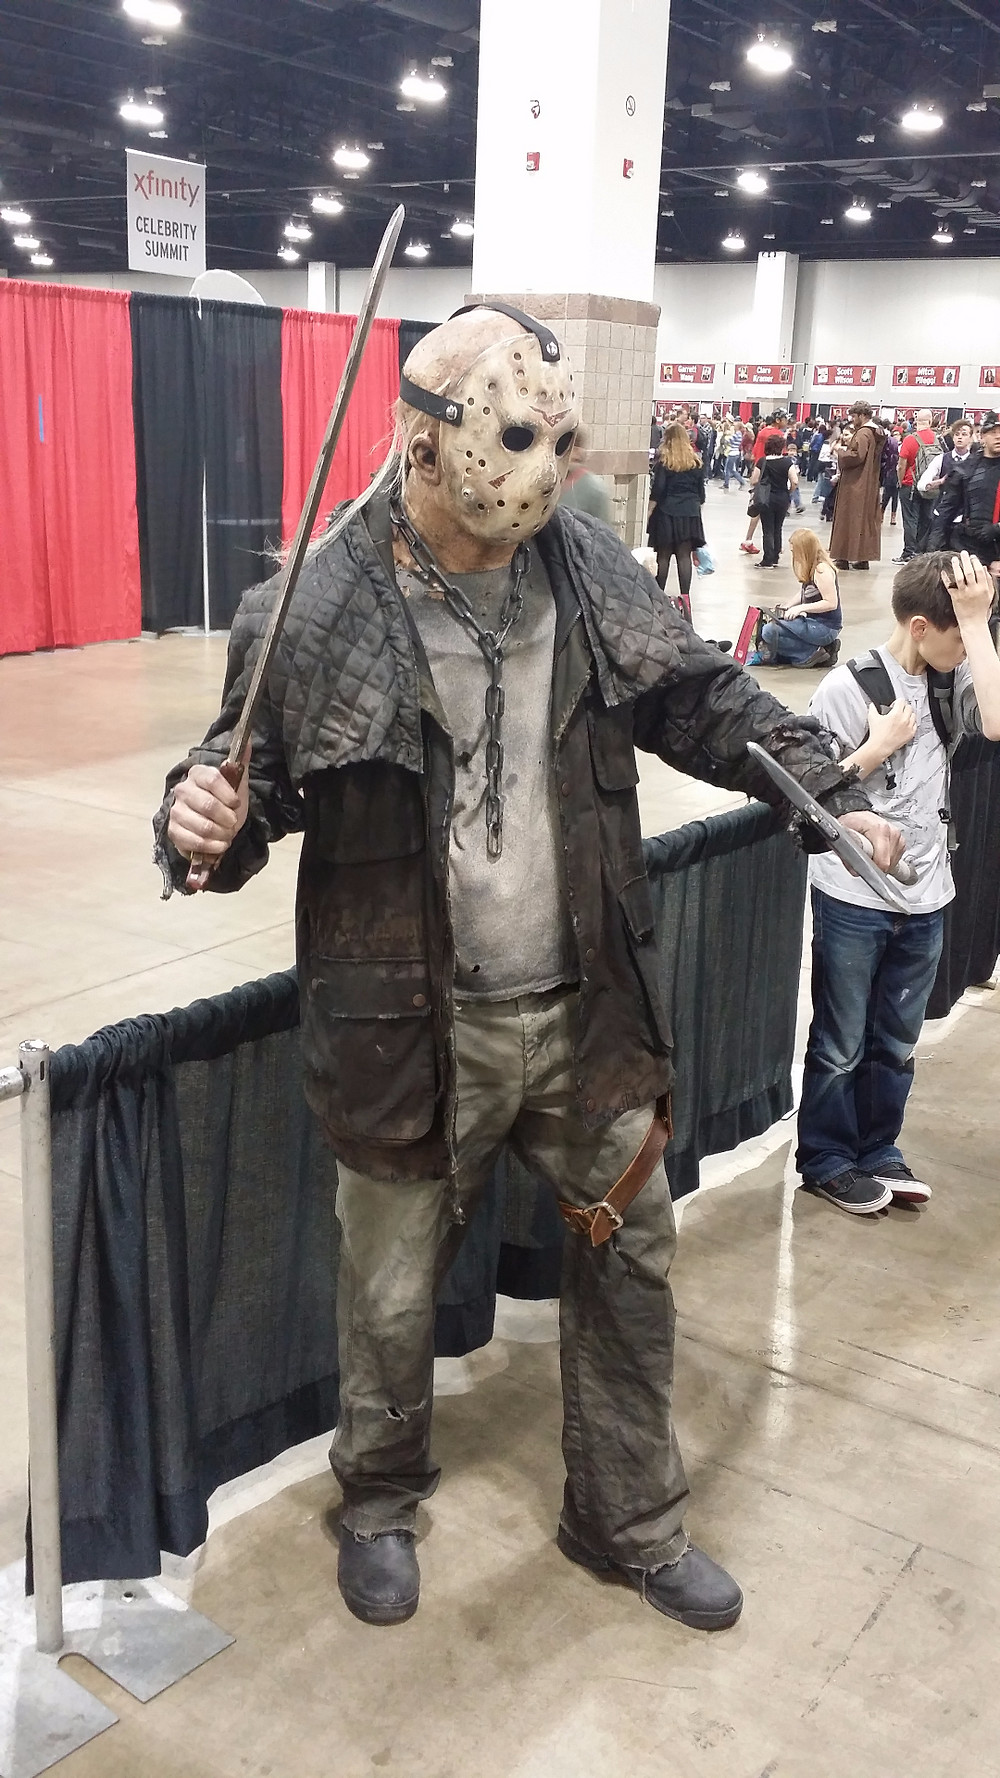 One of the best cosplays there was of our good friend Voorhees.